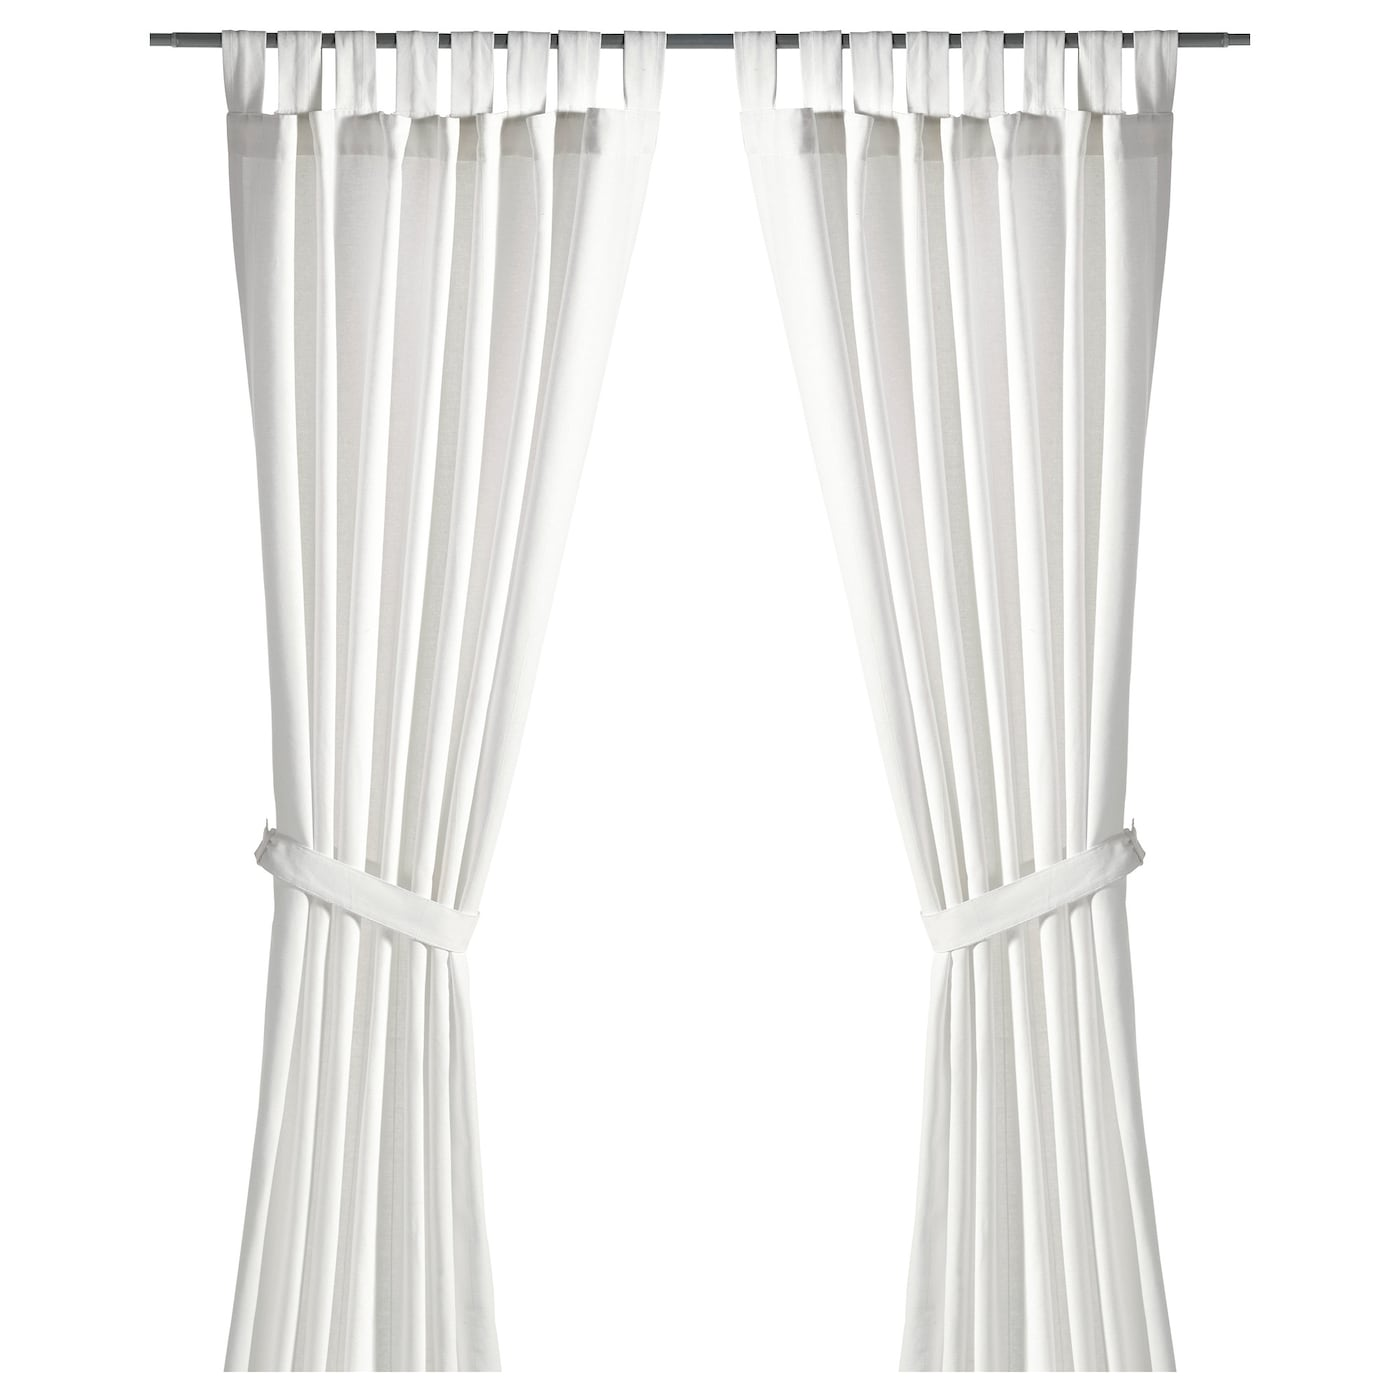 Lenda curtains with tie backs 1 pair white 140x250 cm ikea for White curtains ikea